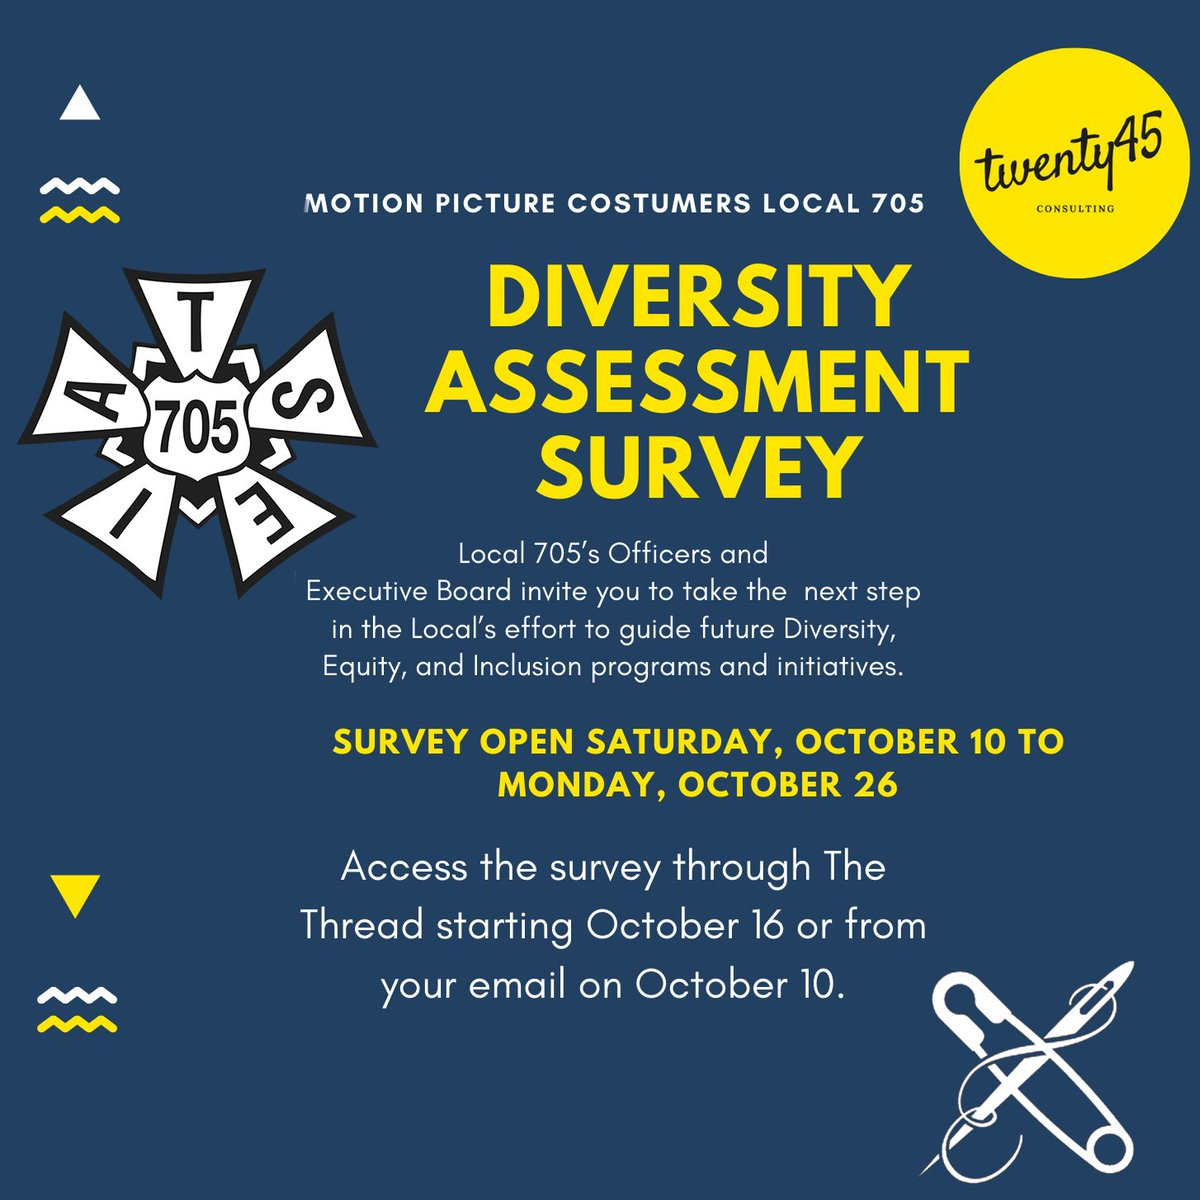 Local 705s Officers and Executive Board invite you to take the next step in the locals effort to guide future diversity, equity and inclusion programs and initiatives.